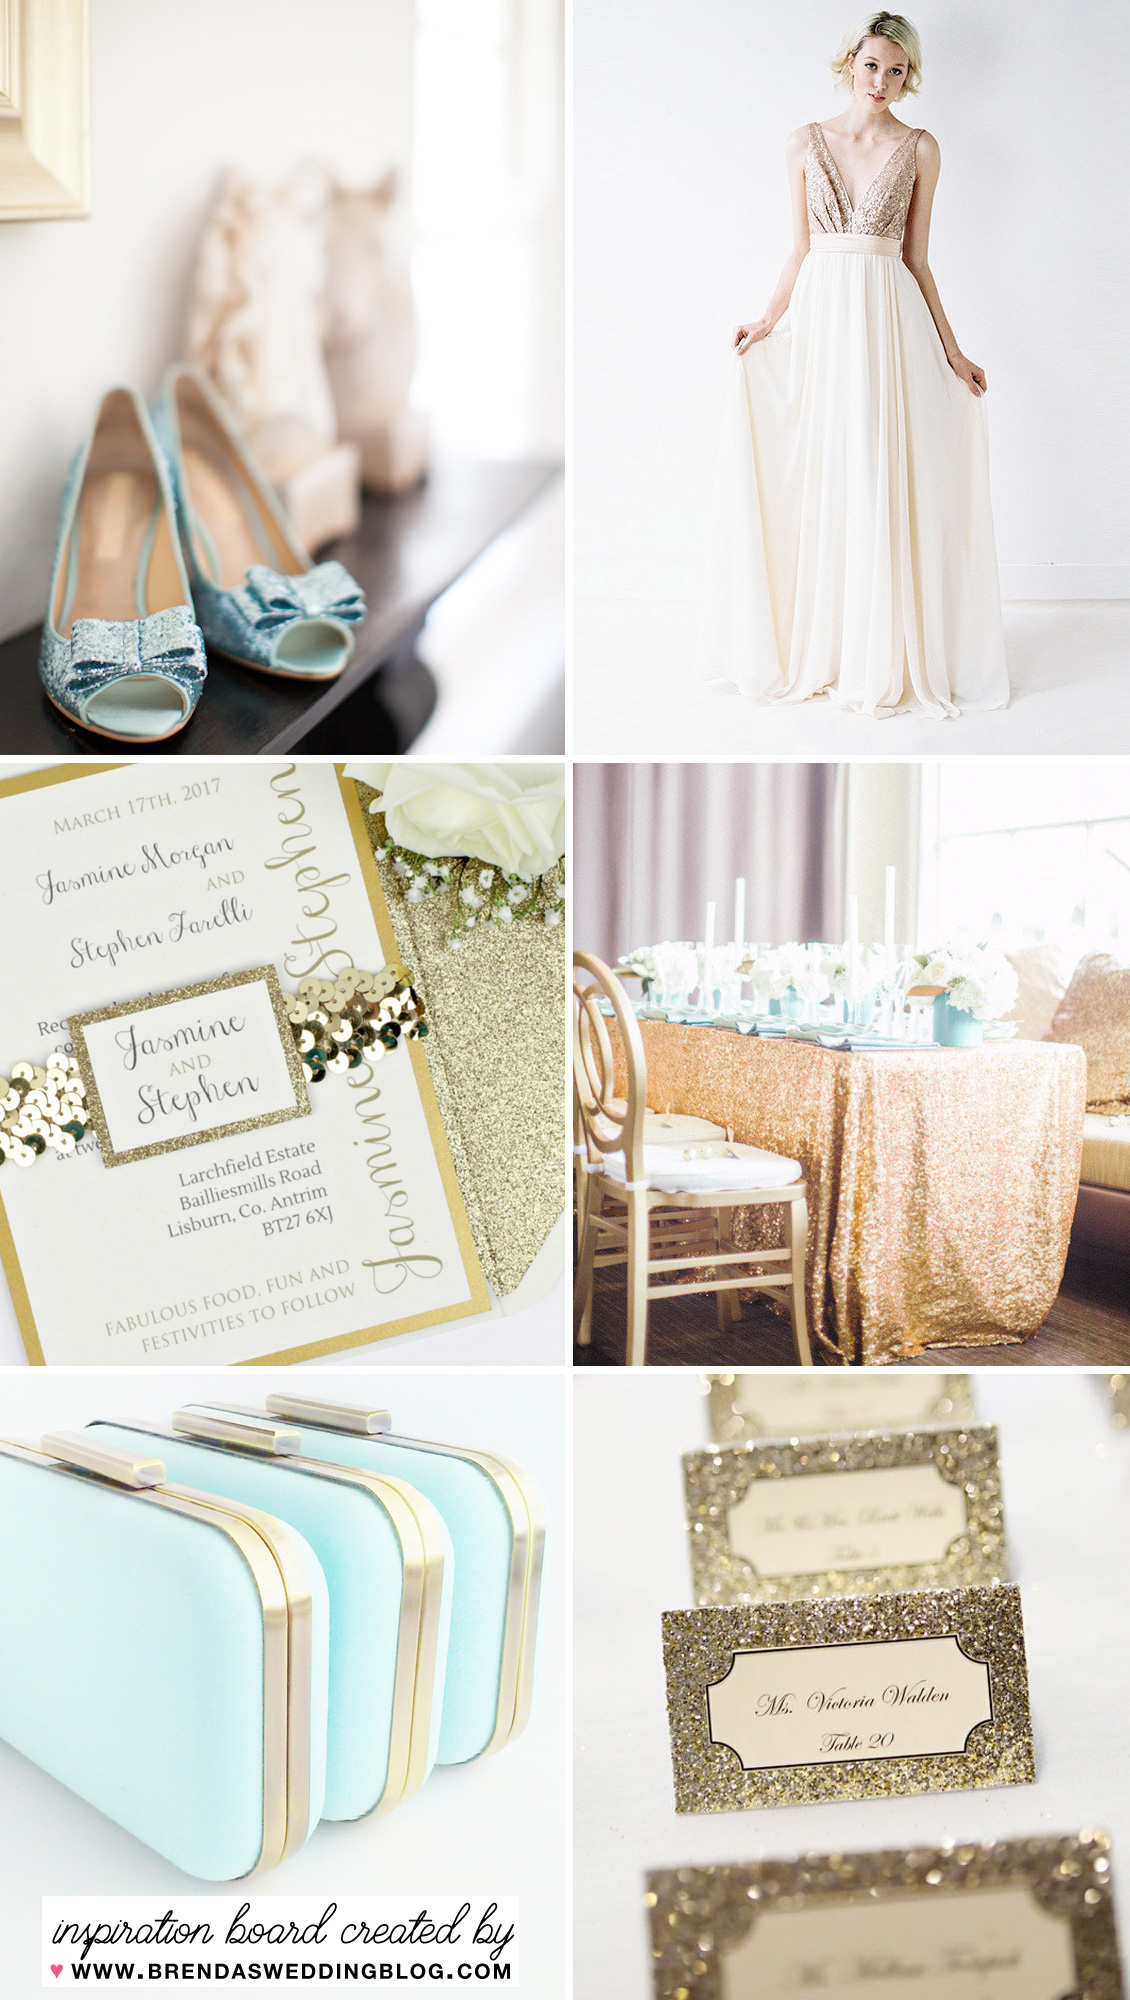 Glittery Gold and Blue Wedding Inspiration Board for a Big Day that Sparkles